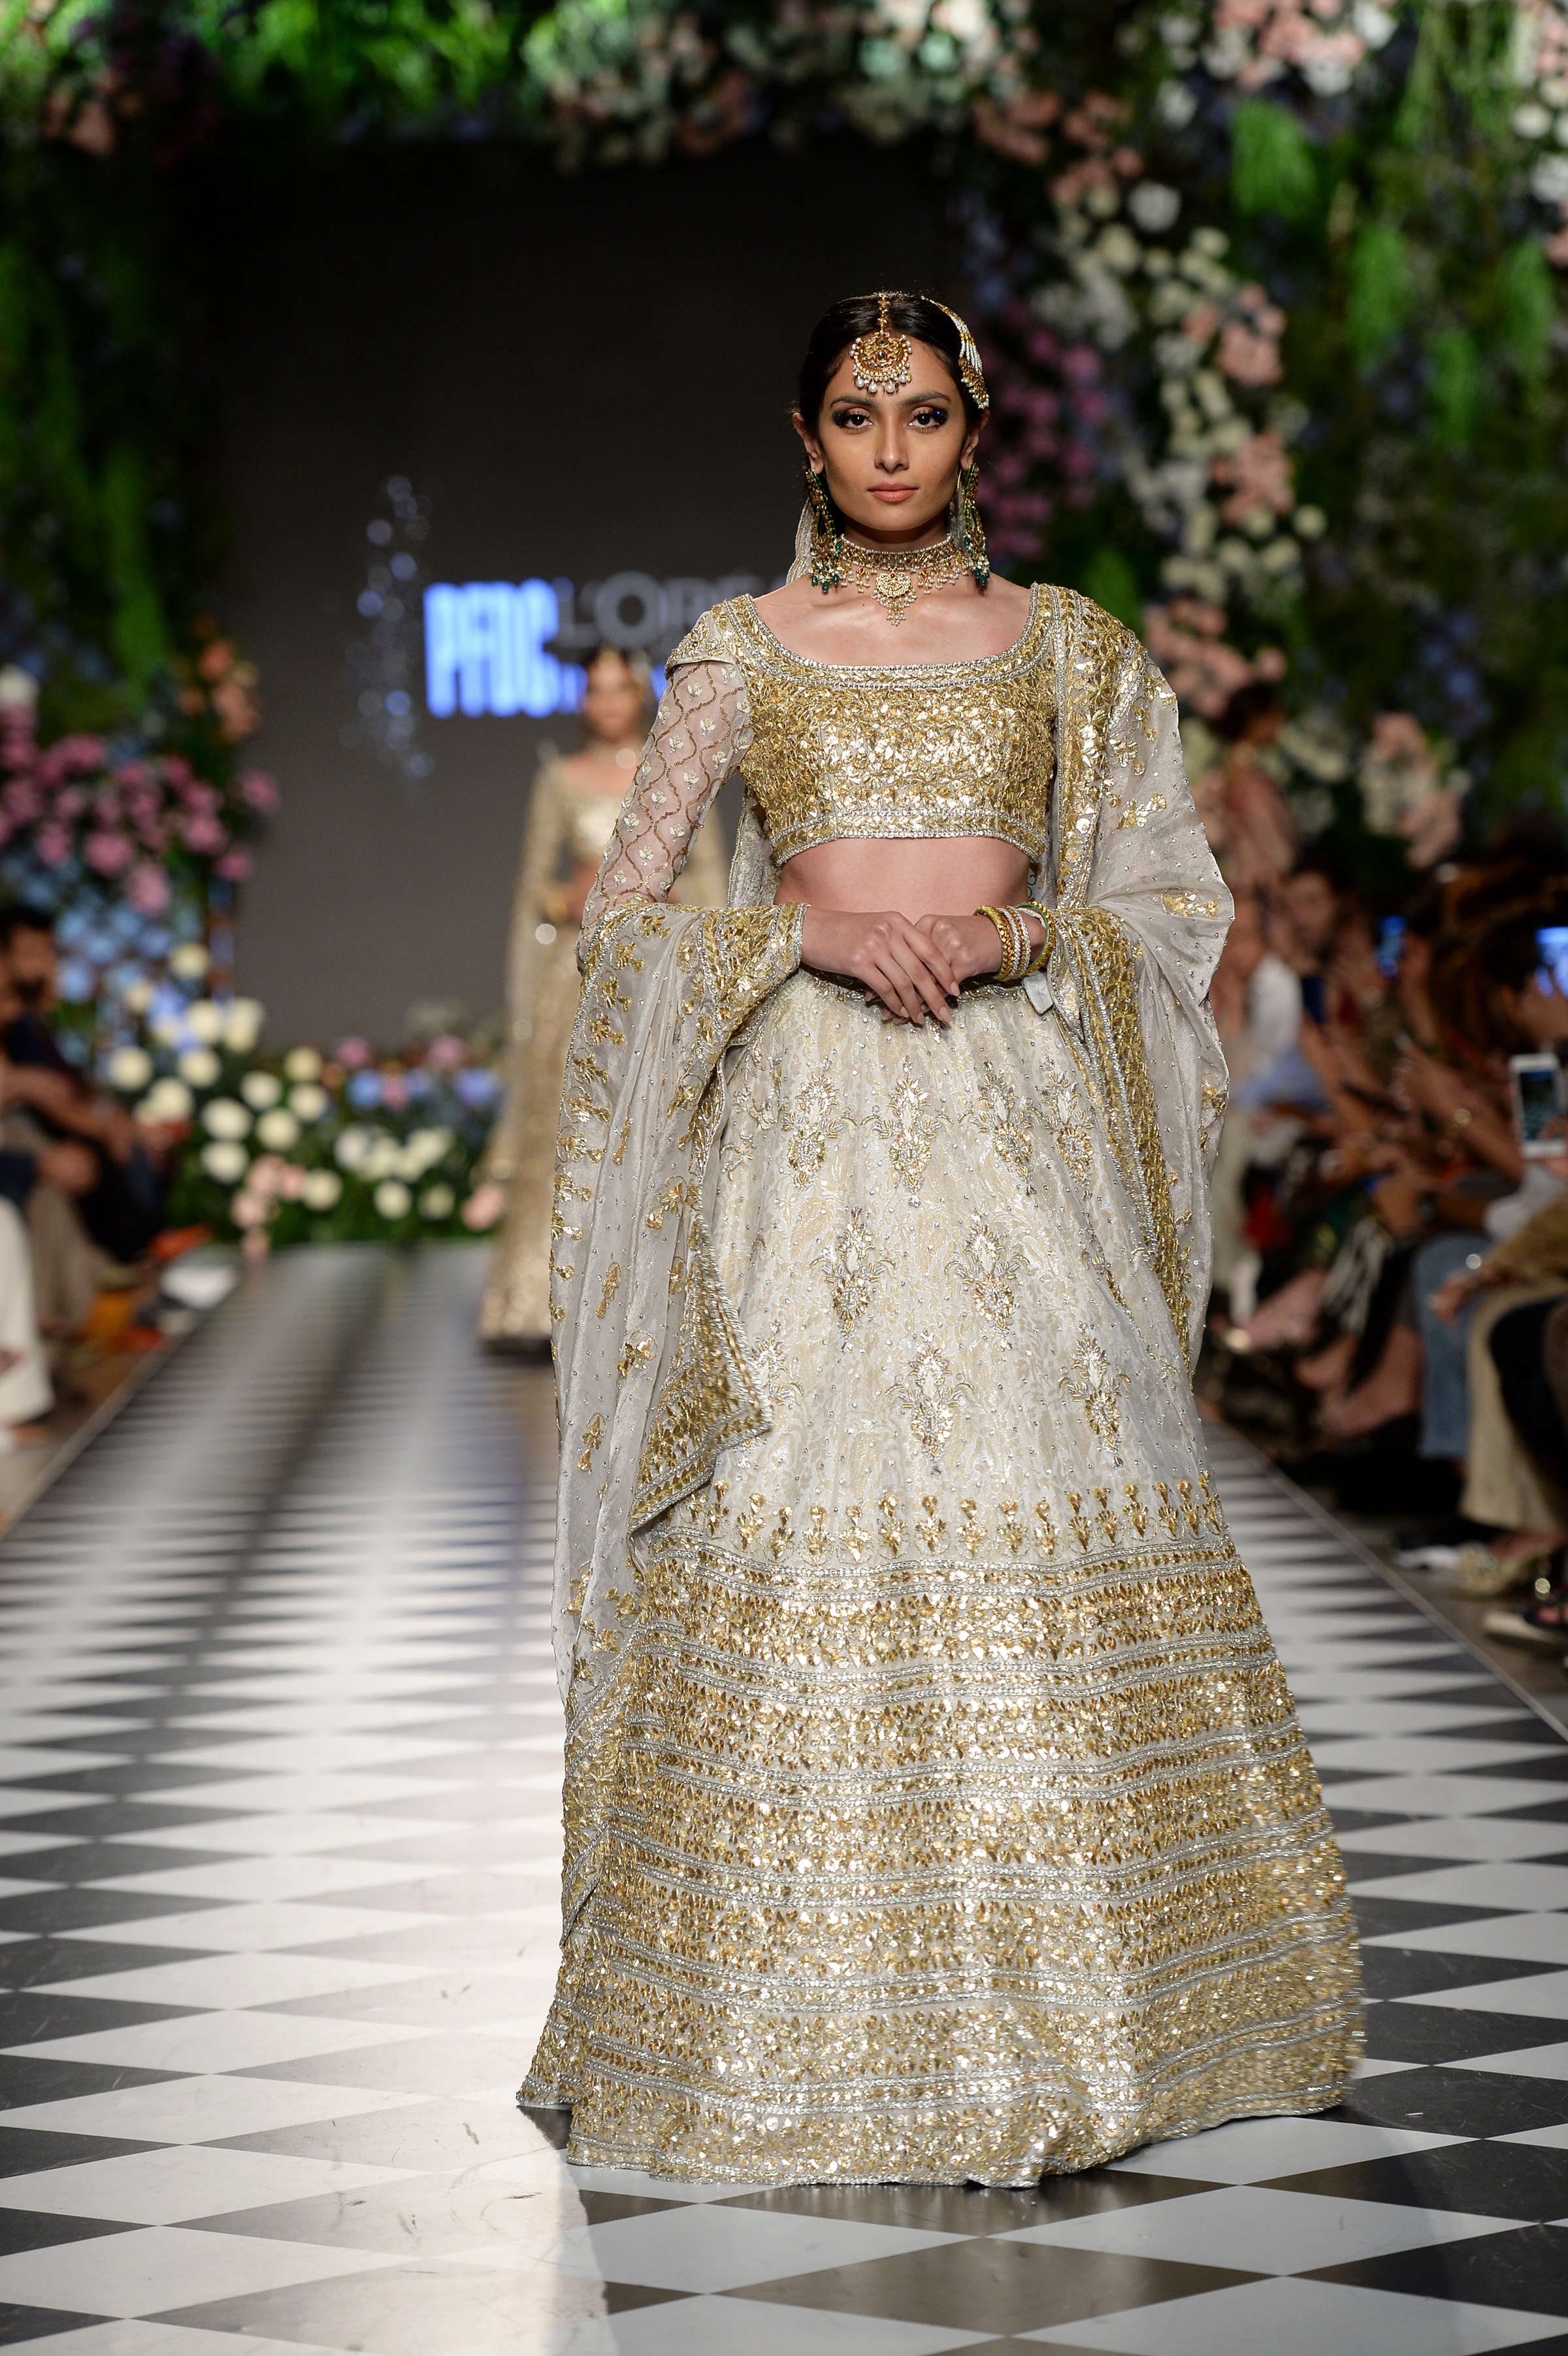 The House of Kamiar Rokni - PFDC L'Oréal Paris Bridal Week 2018 - Photography by Faisal Farooqui and his team at DragonFly